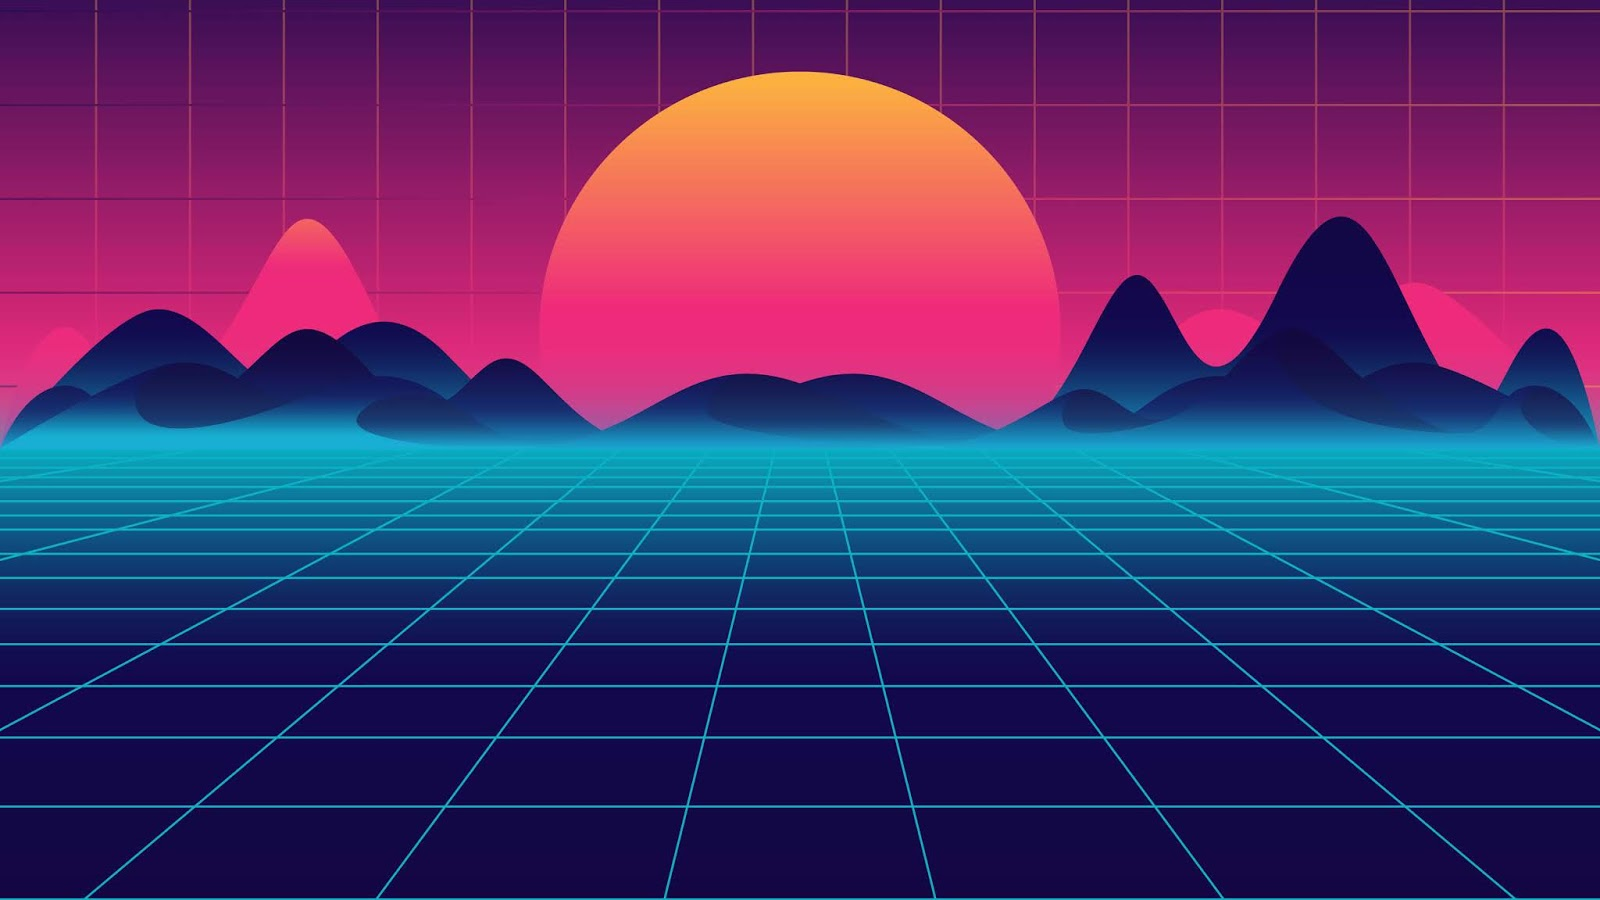 synth wave wallpaper hd